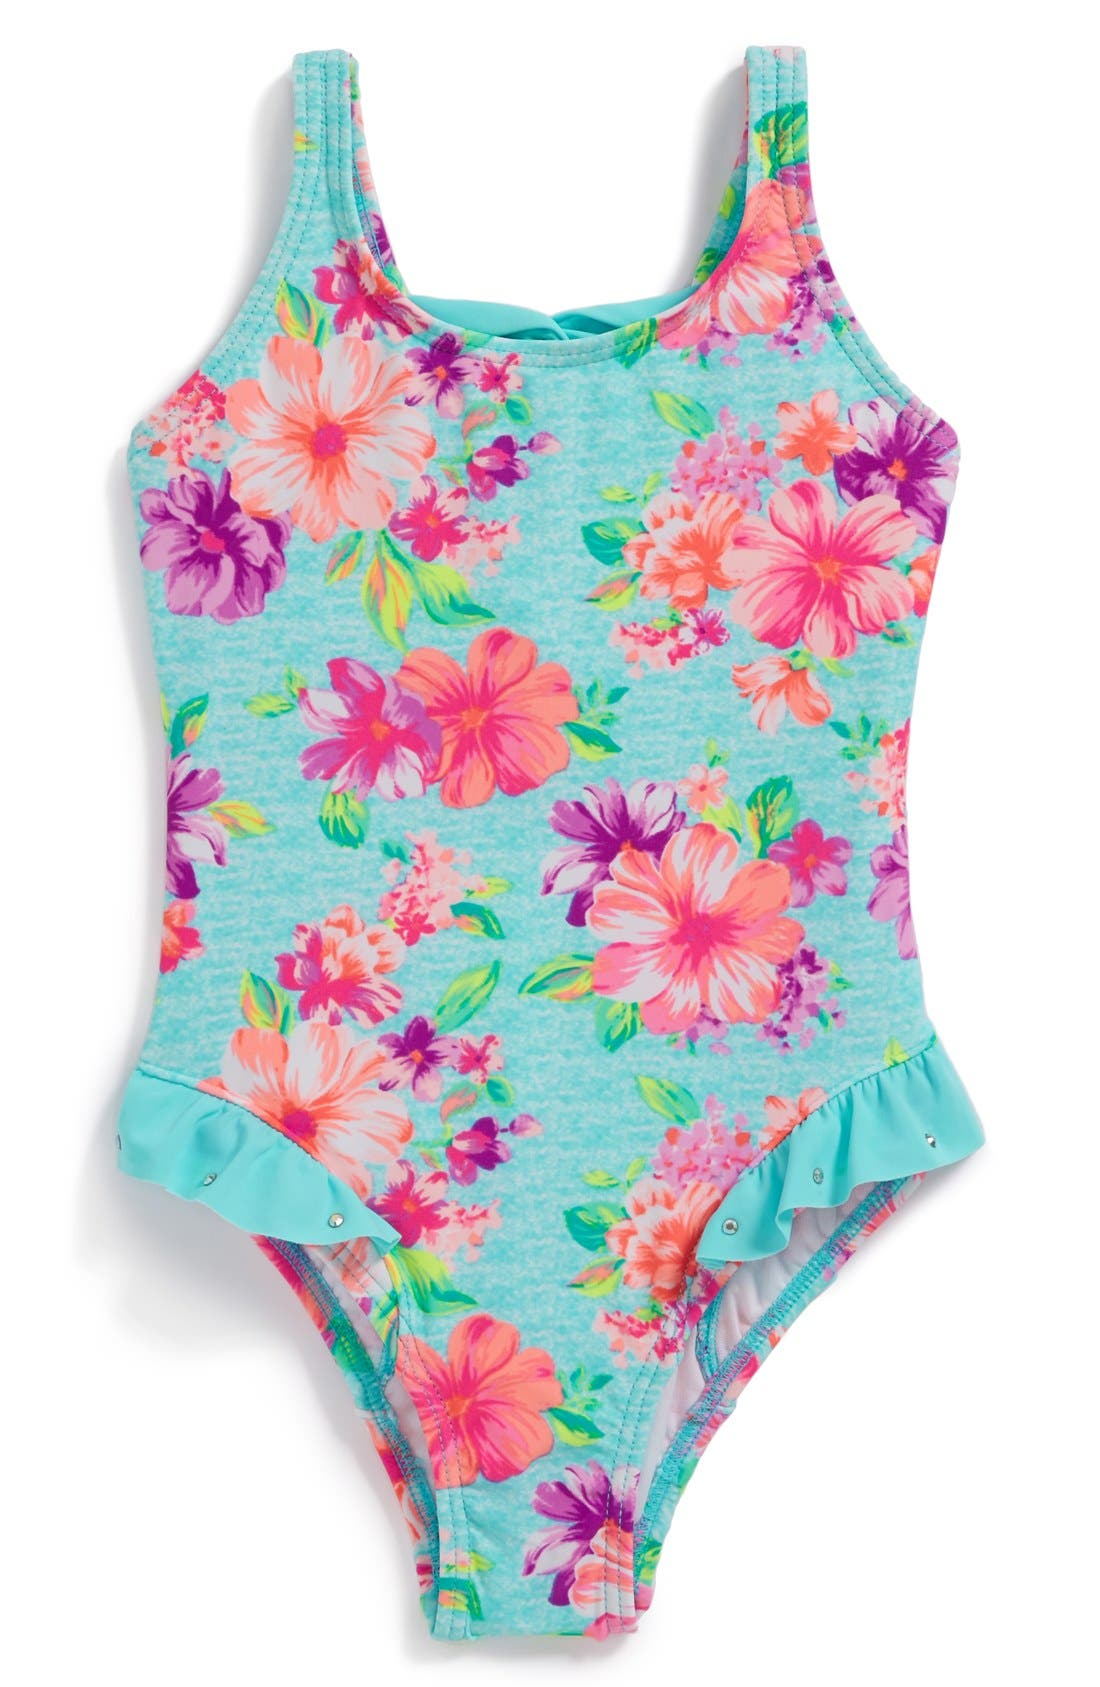 Main Image - Hula Star 'Country Charm' One-Piece Swimsuit (Toddler Girls)